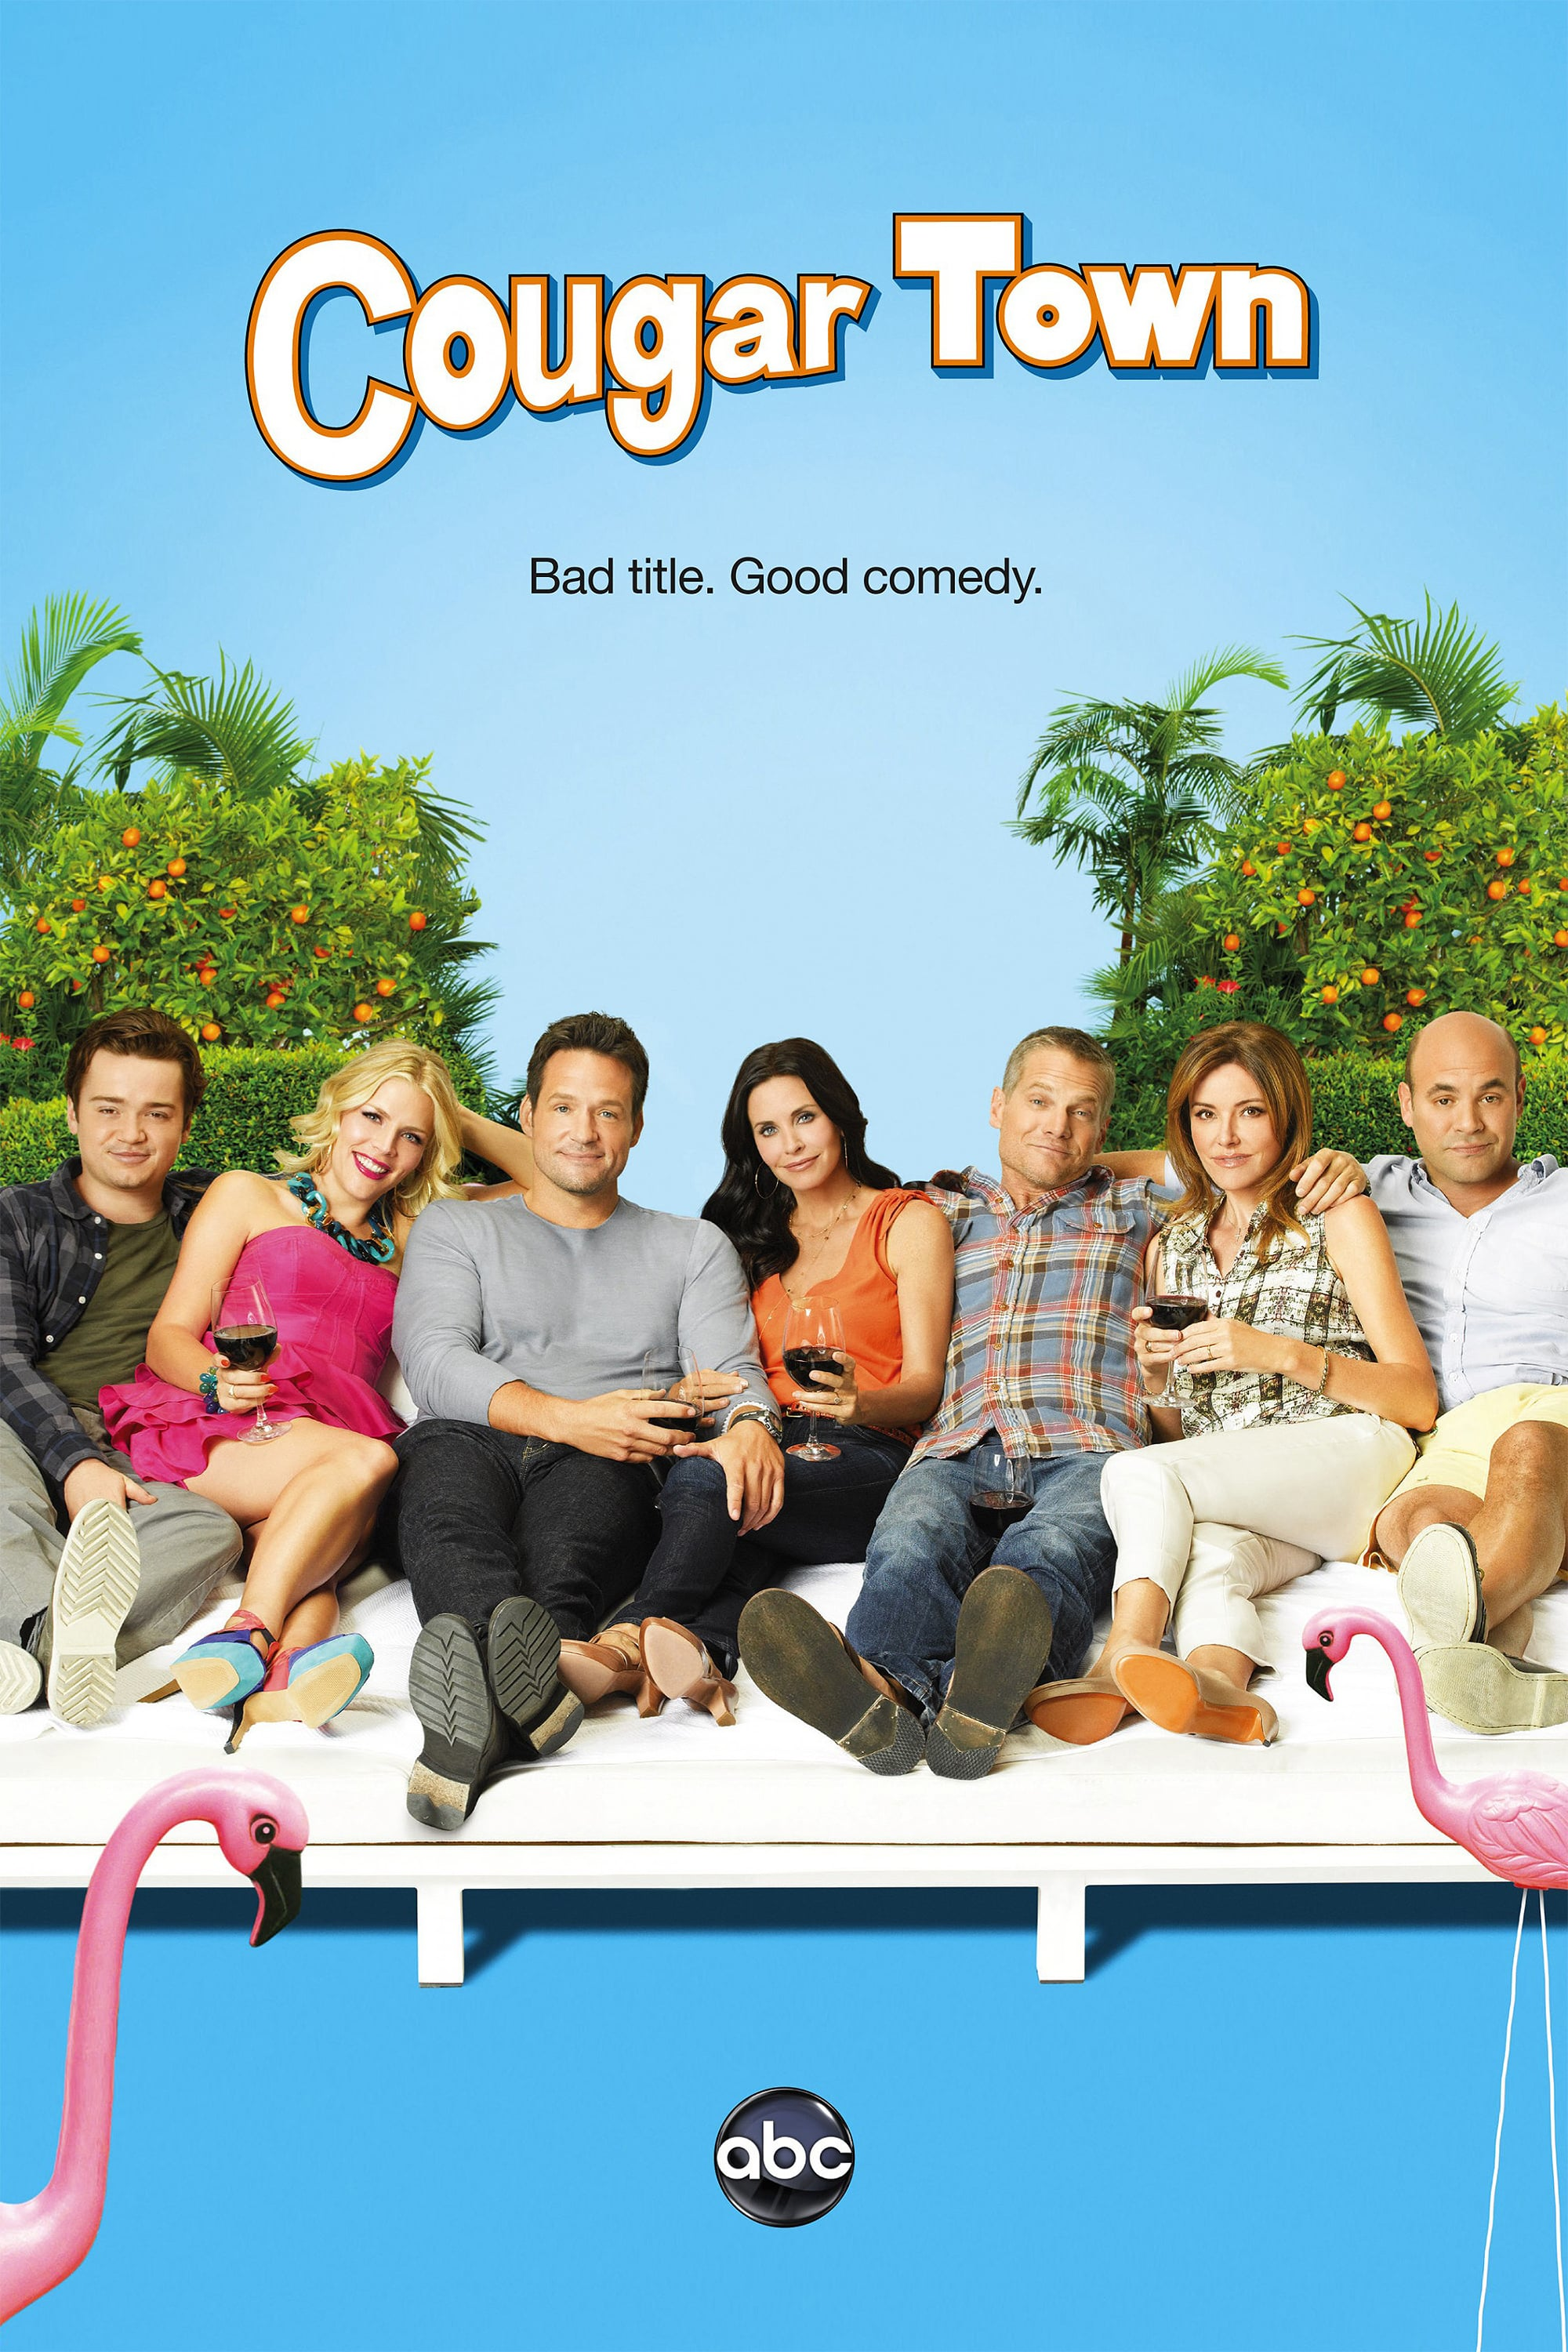 Cougar Town, 2009